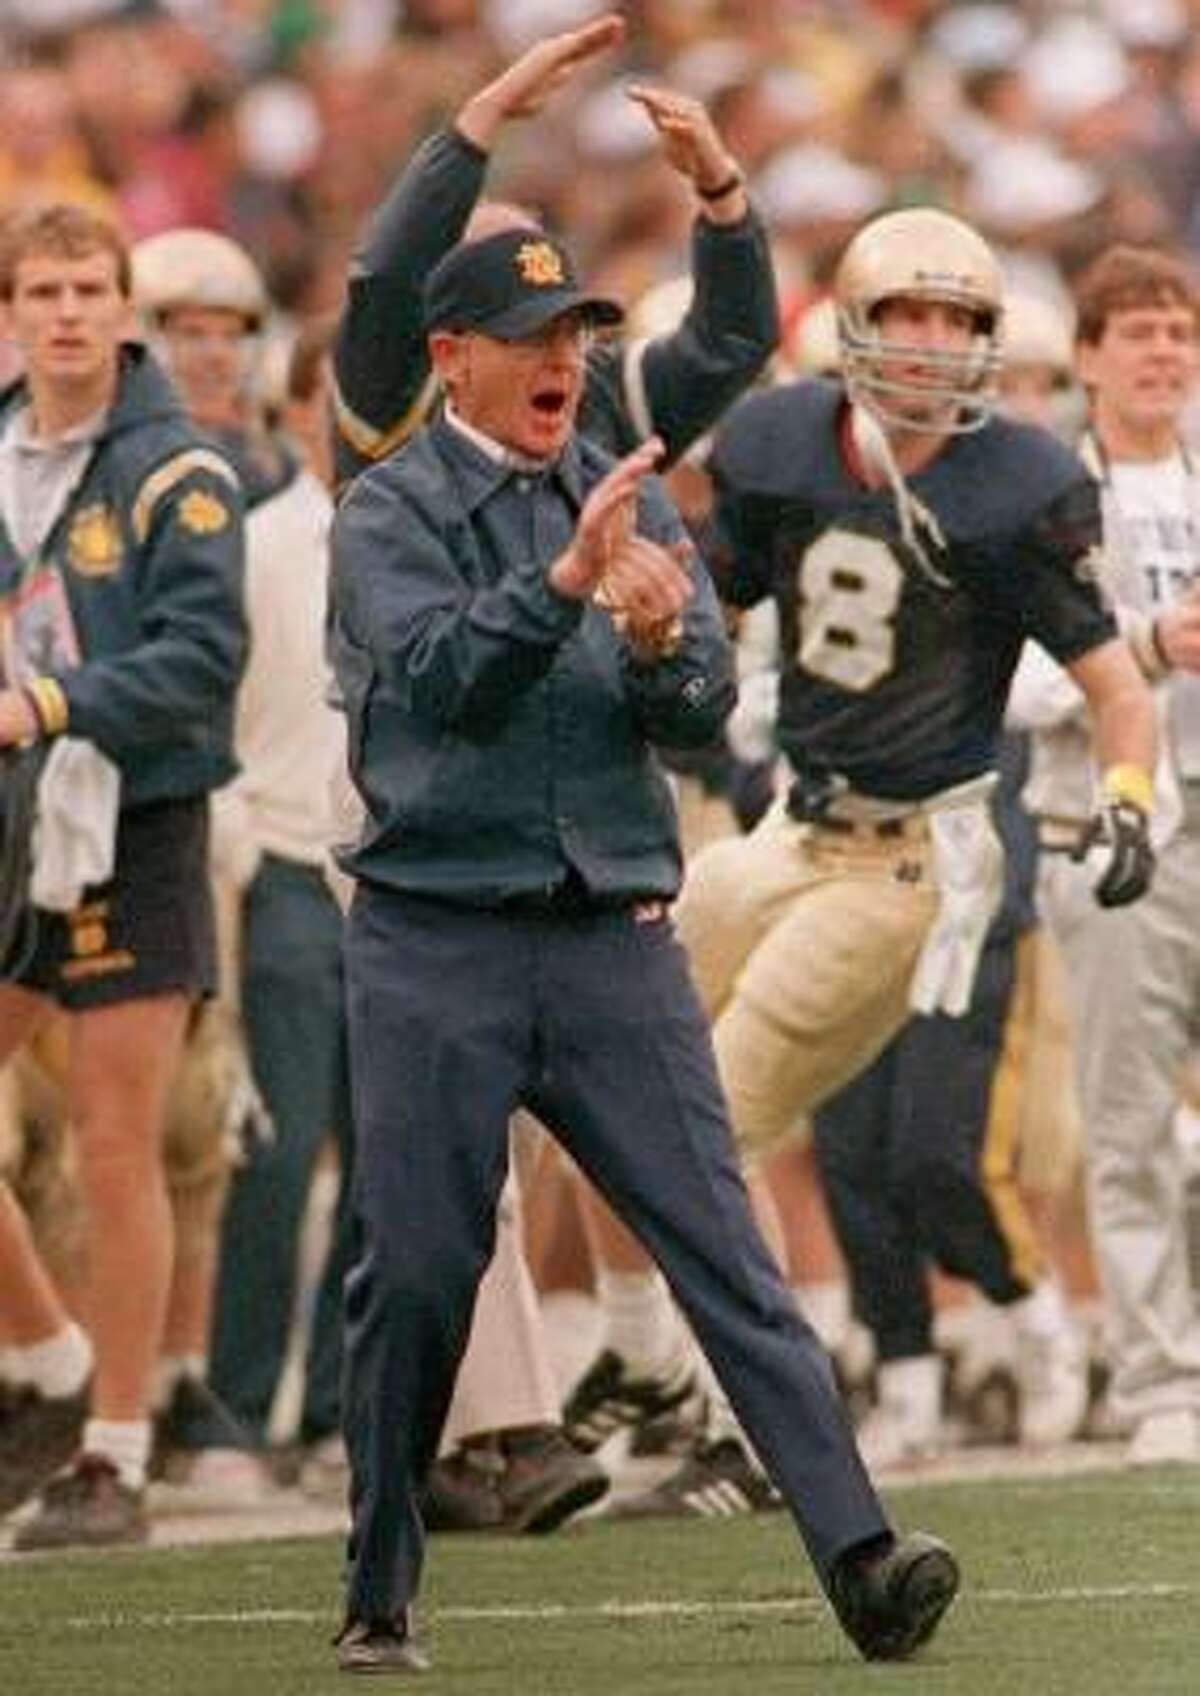 FILE--Notre Dame head coach Lou Holtz cheers for his team against West Virgina in the Fiesta Bowl in Tempe, Ariz. in this Jan. 2, 1989 file photo. Holtz is leaving his CBS football analyst position to take the head coaching job at struggling South Carolina, the network's Internet site, CBS Sportsline, reported Thursday, Dec. 3, 1998.